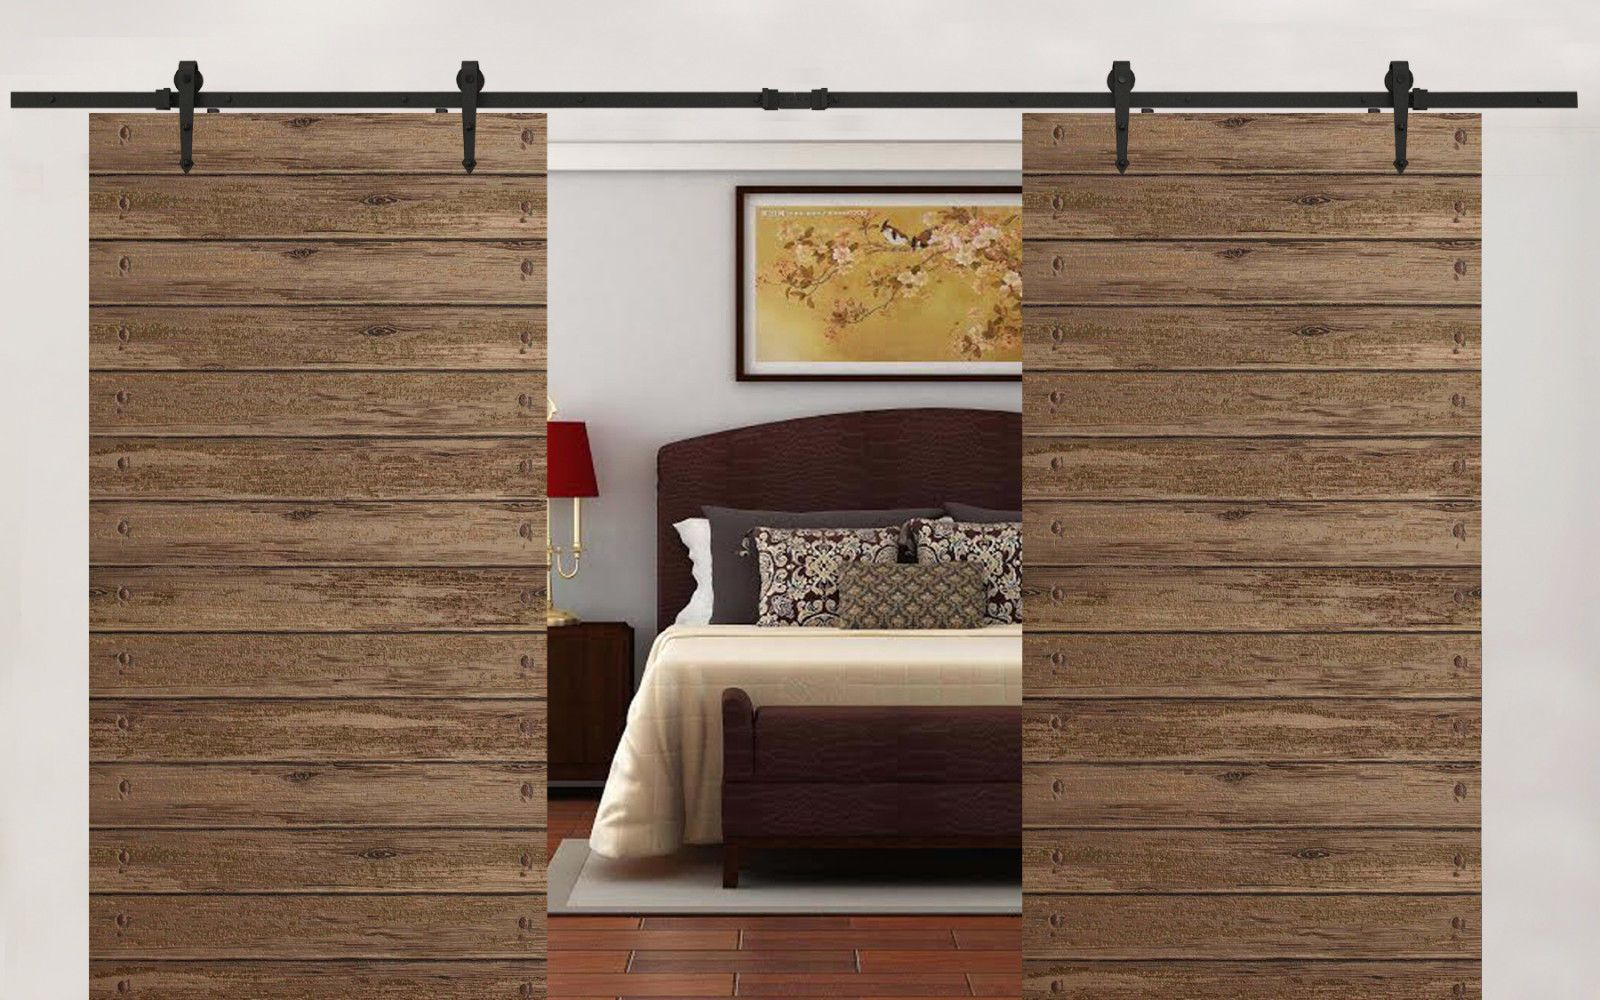 12 Ft Black Antique Style Sliding Barn Wood Door Hardware Closet Set Home Decor Wood Doors Barn Wood Closet Hardware